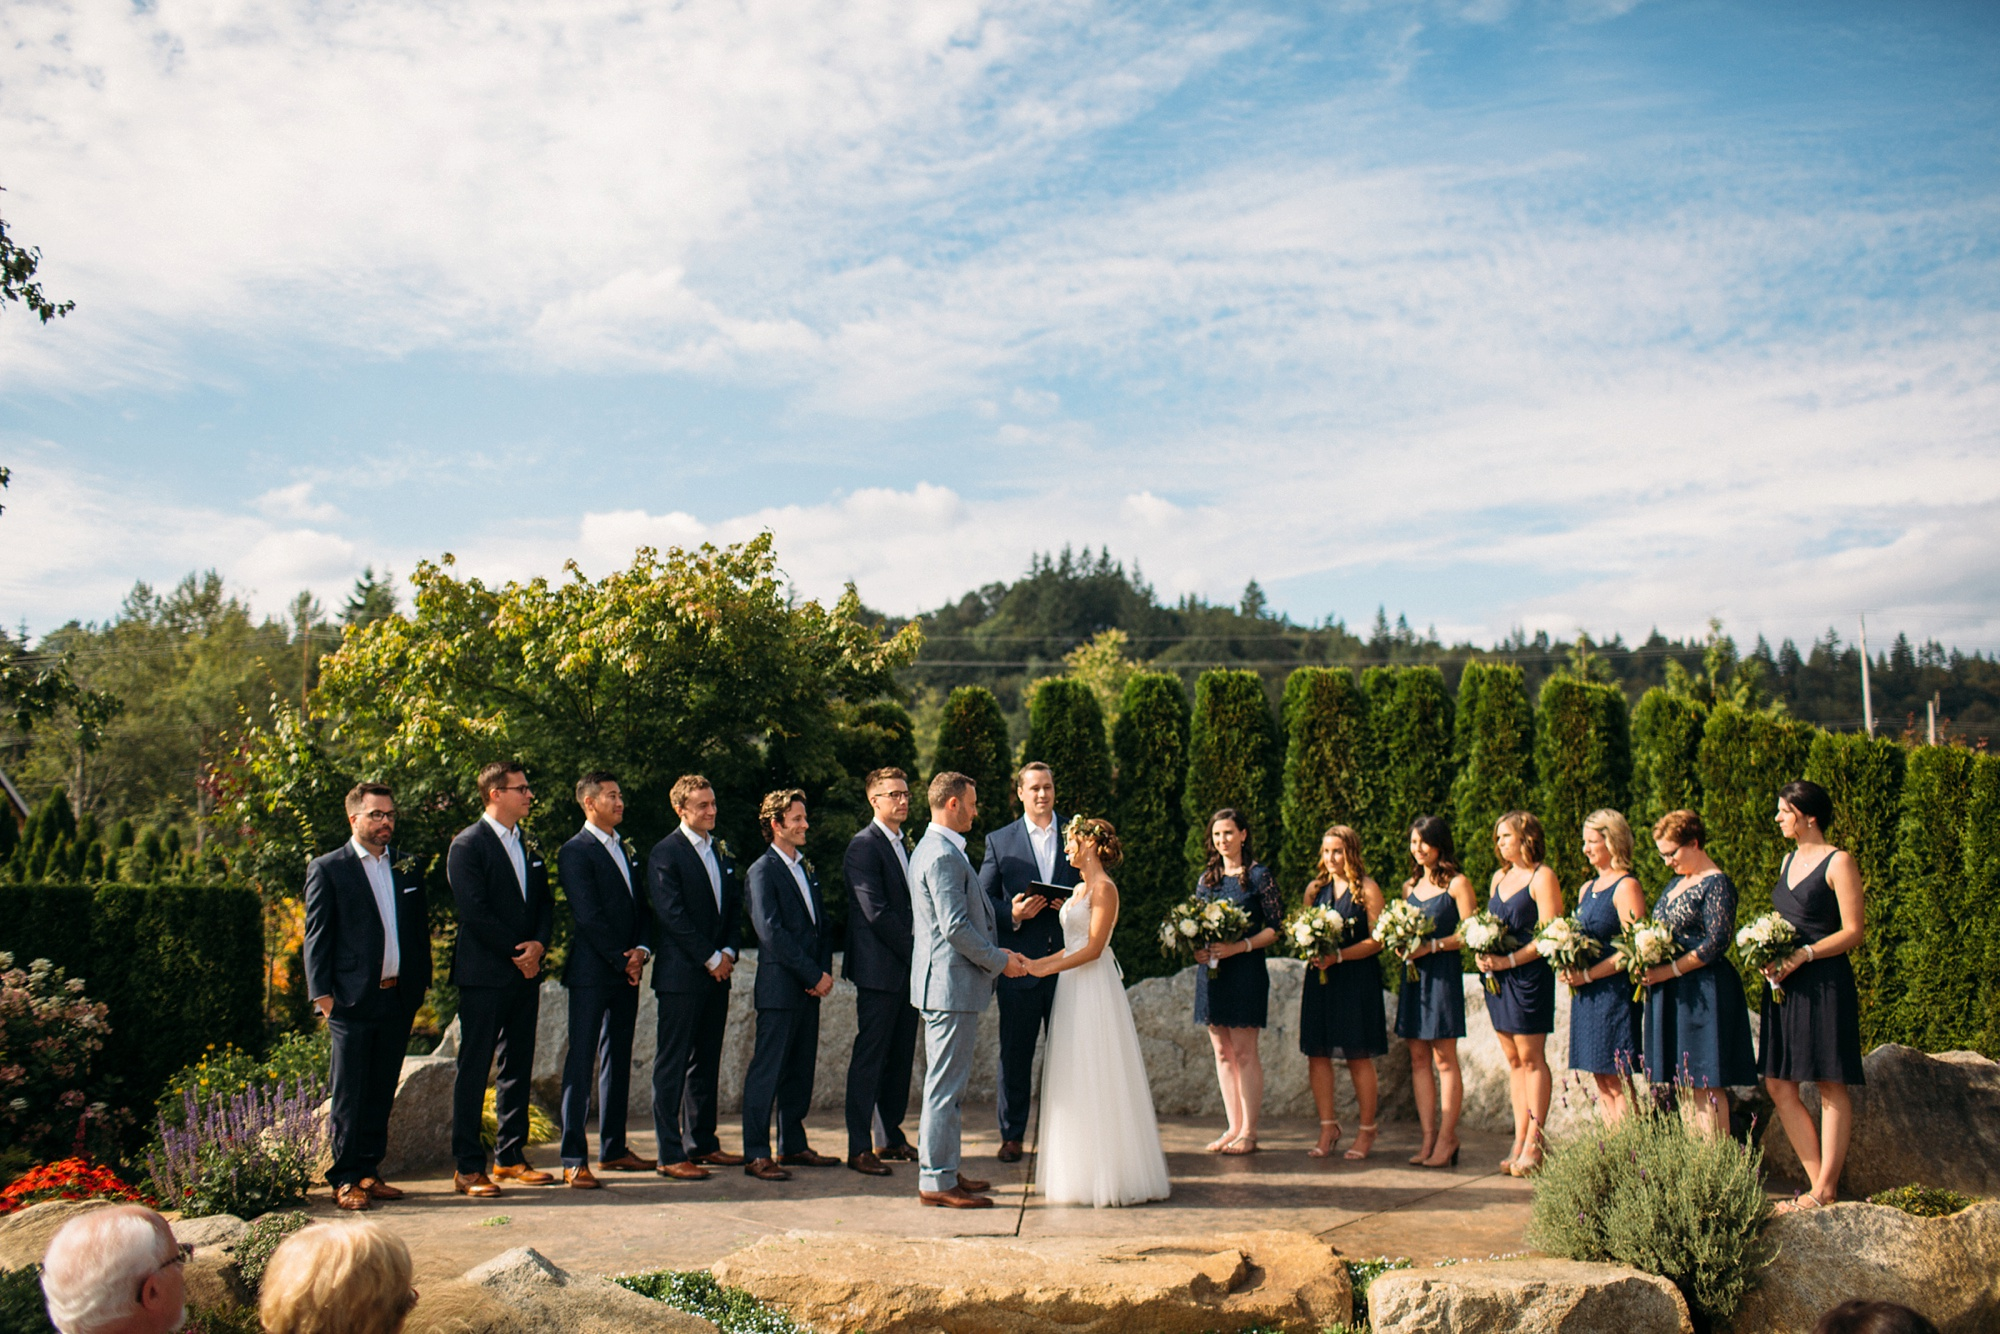 Let Pine Creek - frame your special day in amazing natural beauty!